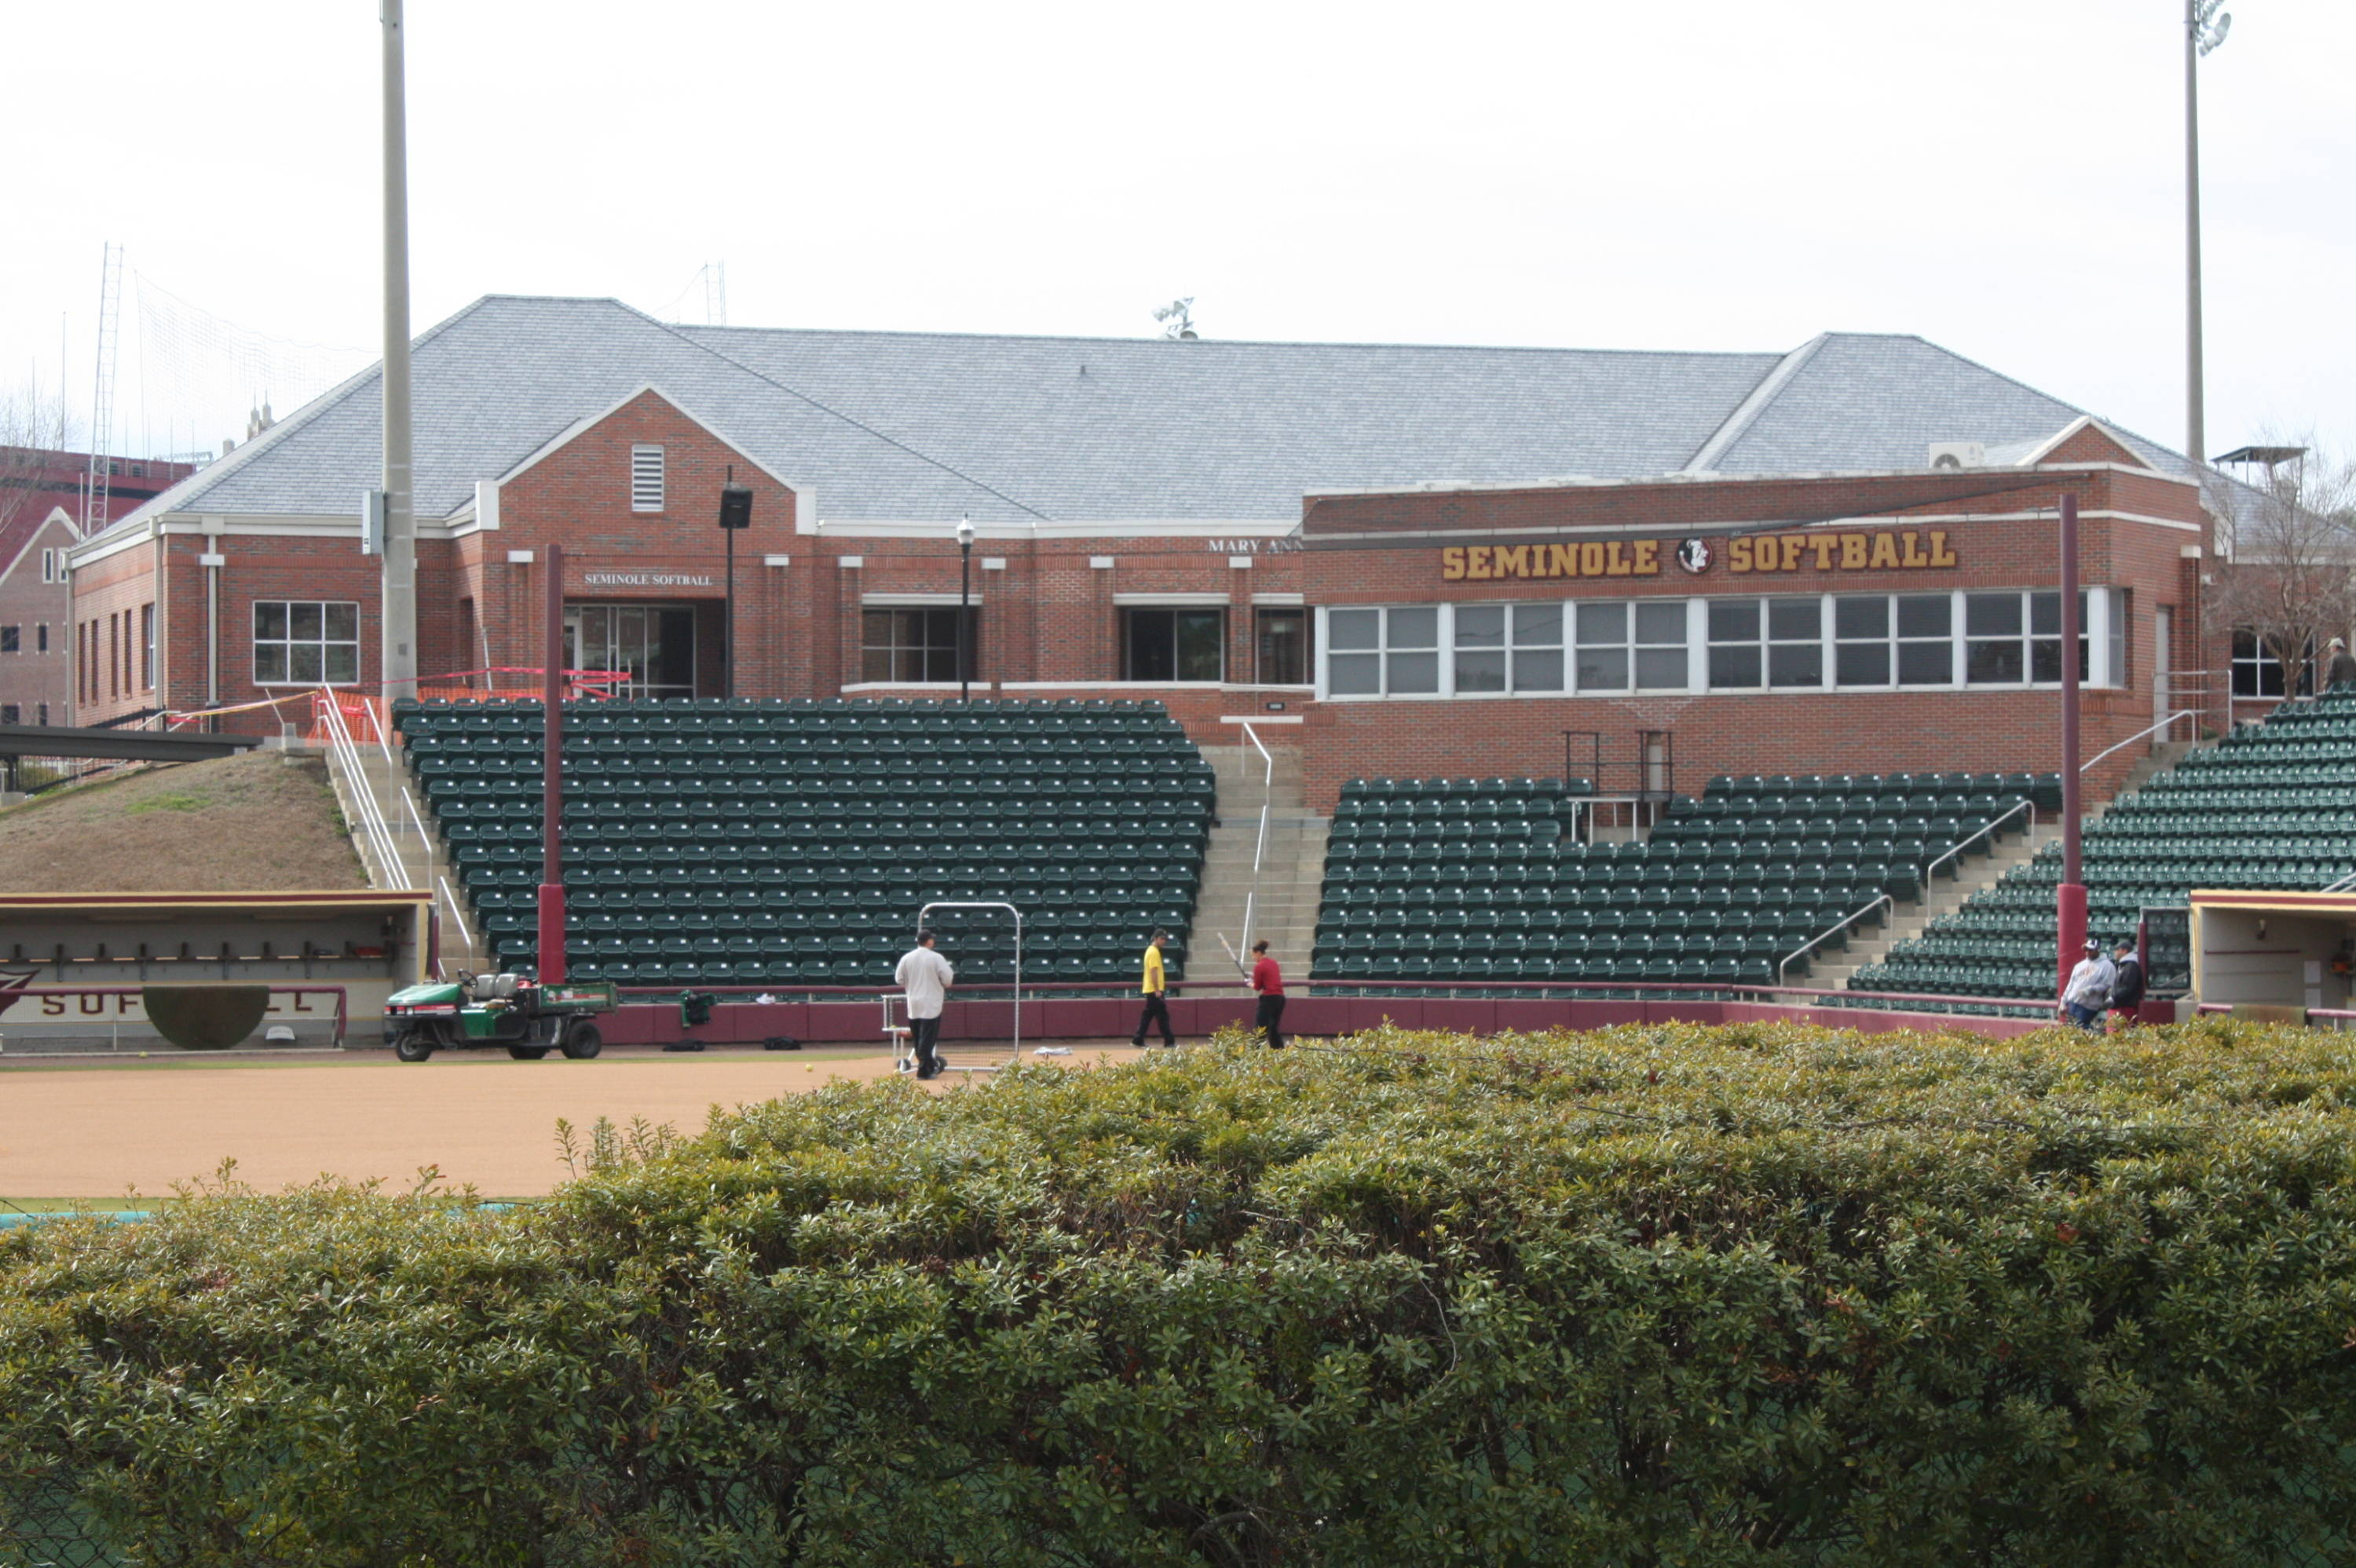 The field, press box and Stiles & Smith building